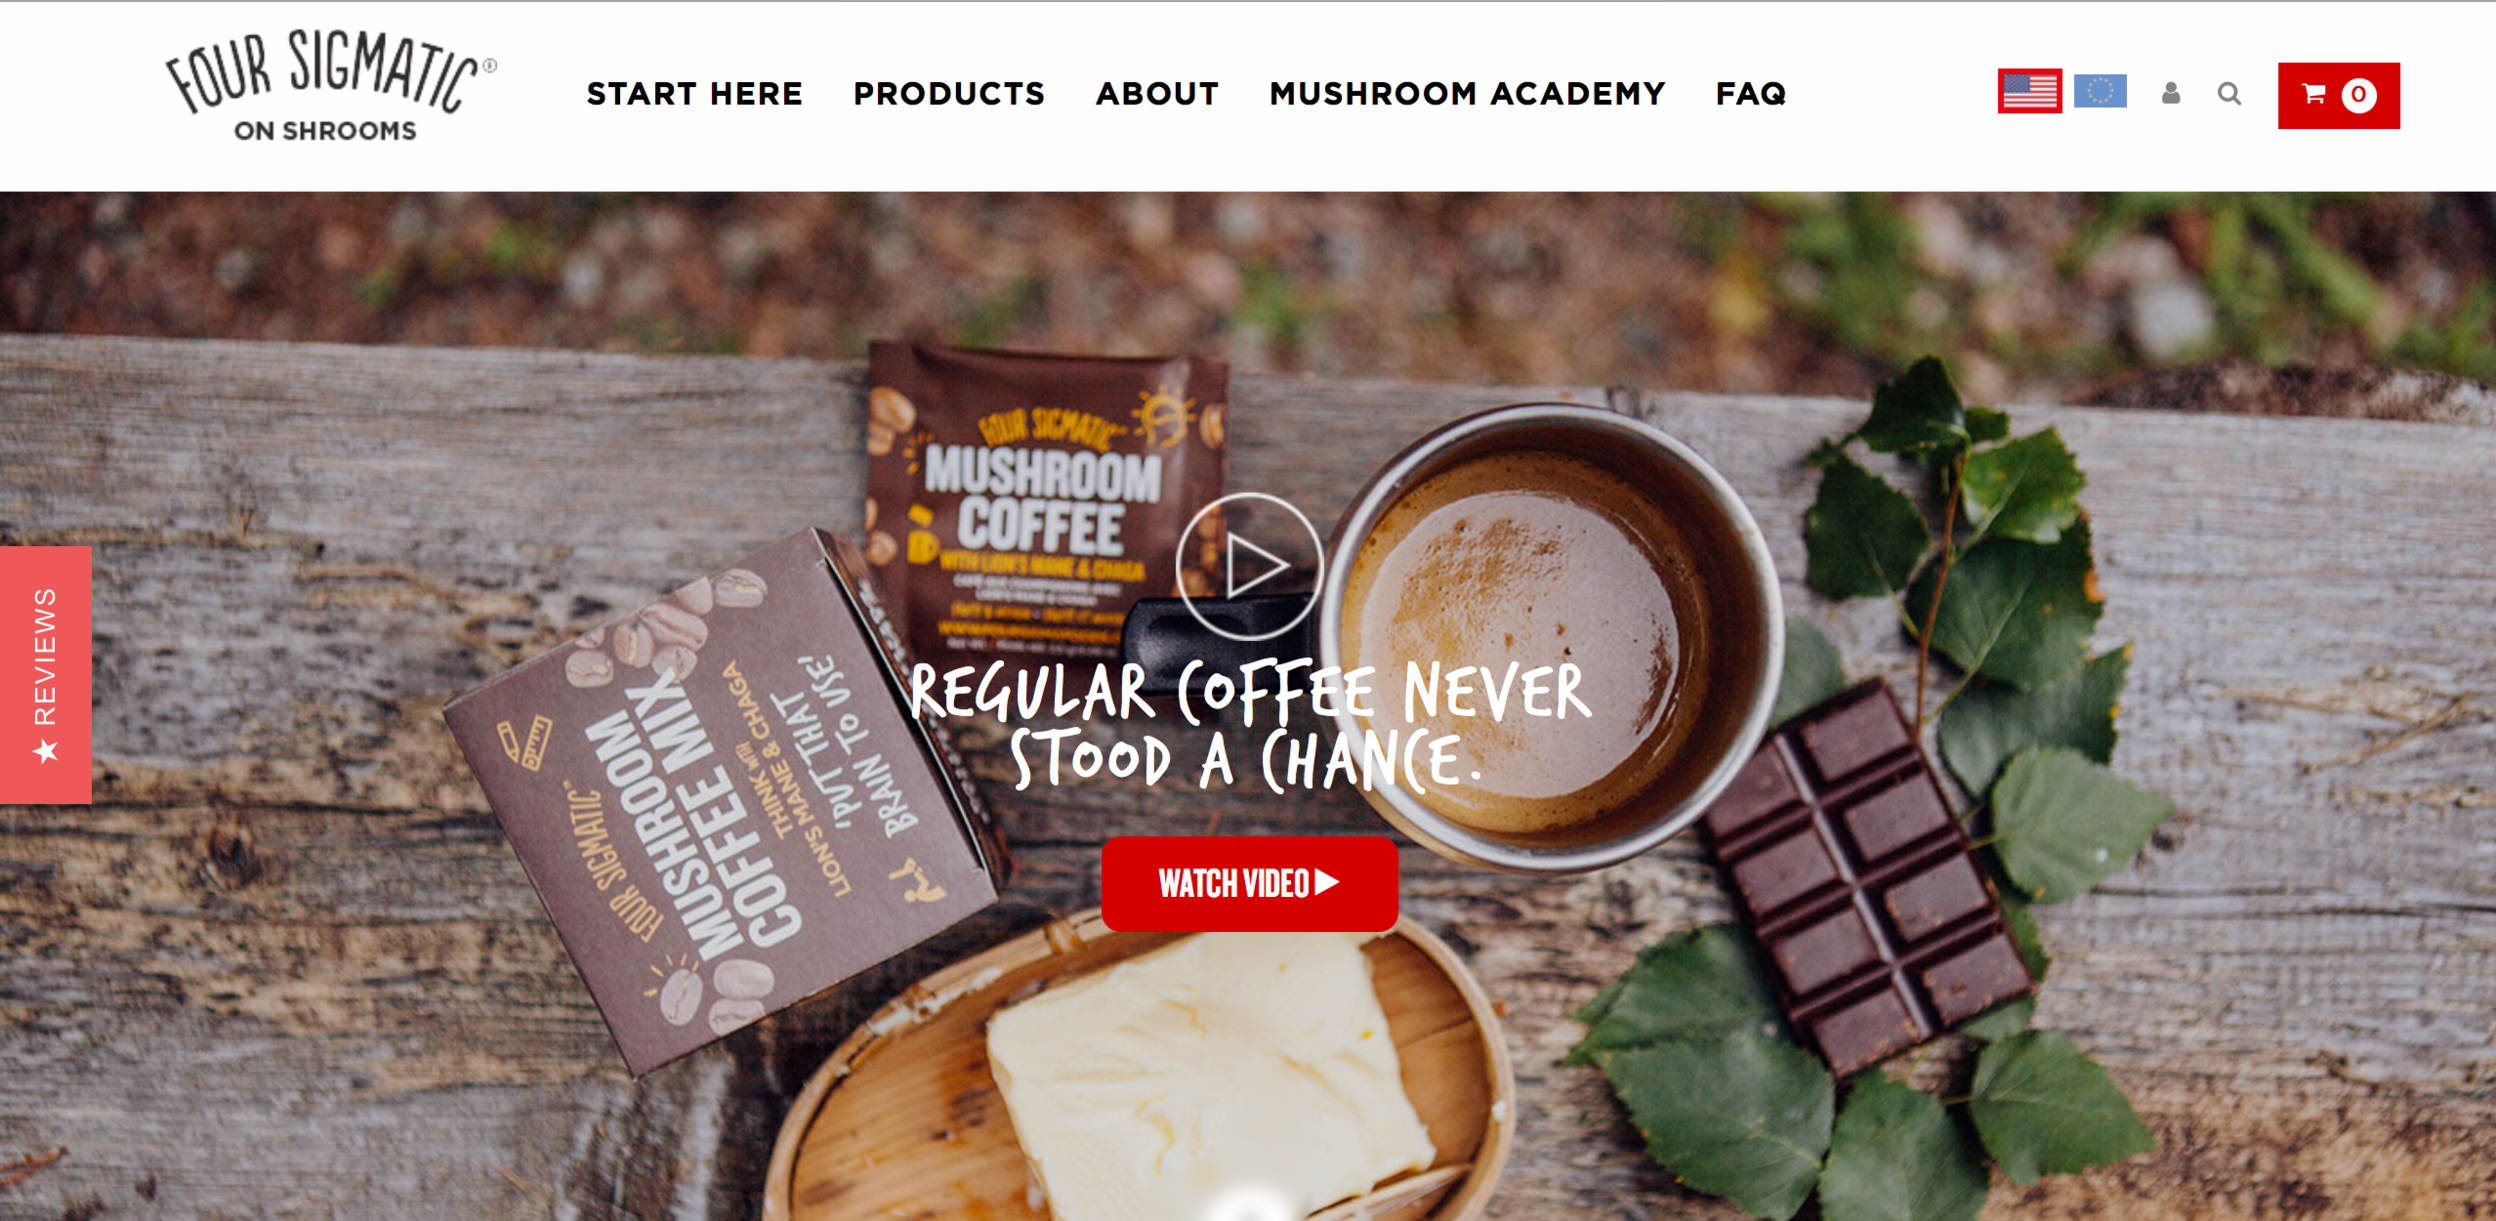 T  he    FourSigmatic    homepage